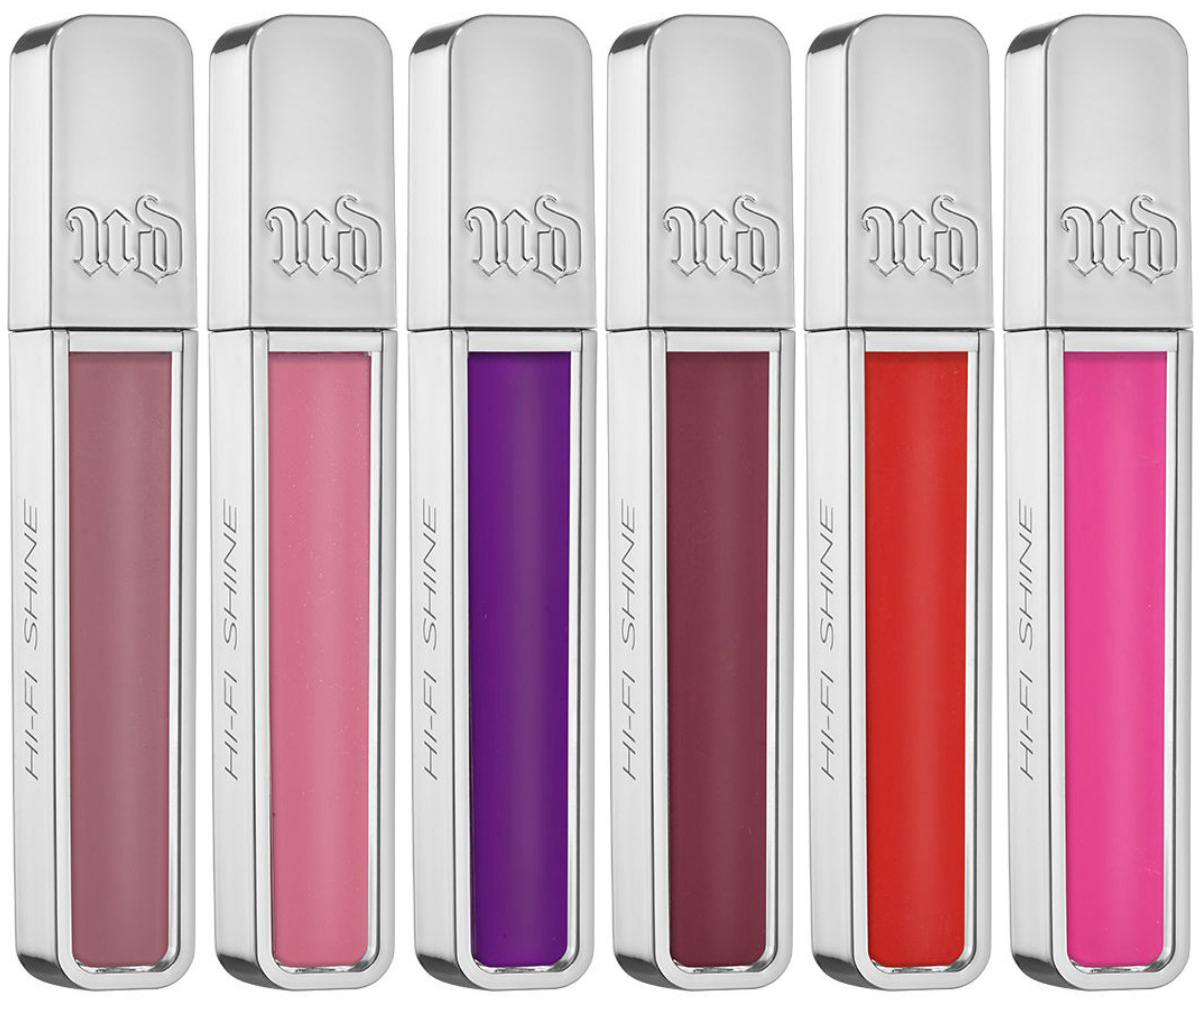 2 Hi-Fi Shine Ultra Cushion Lipgloss matte.jpg